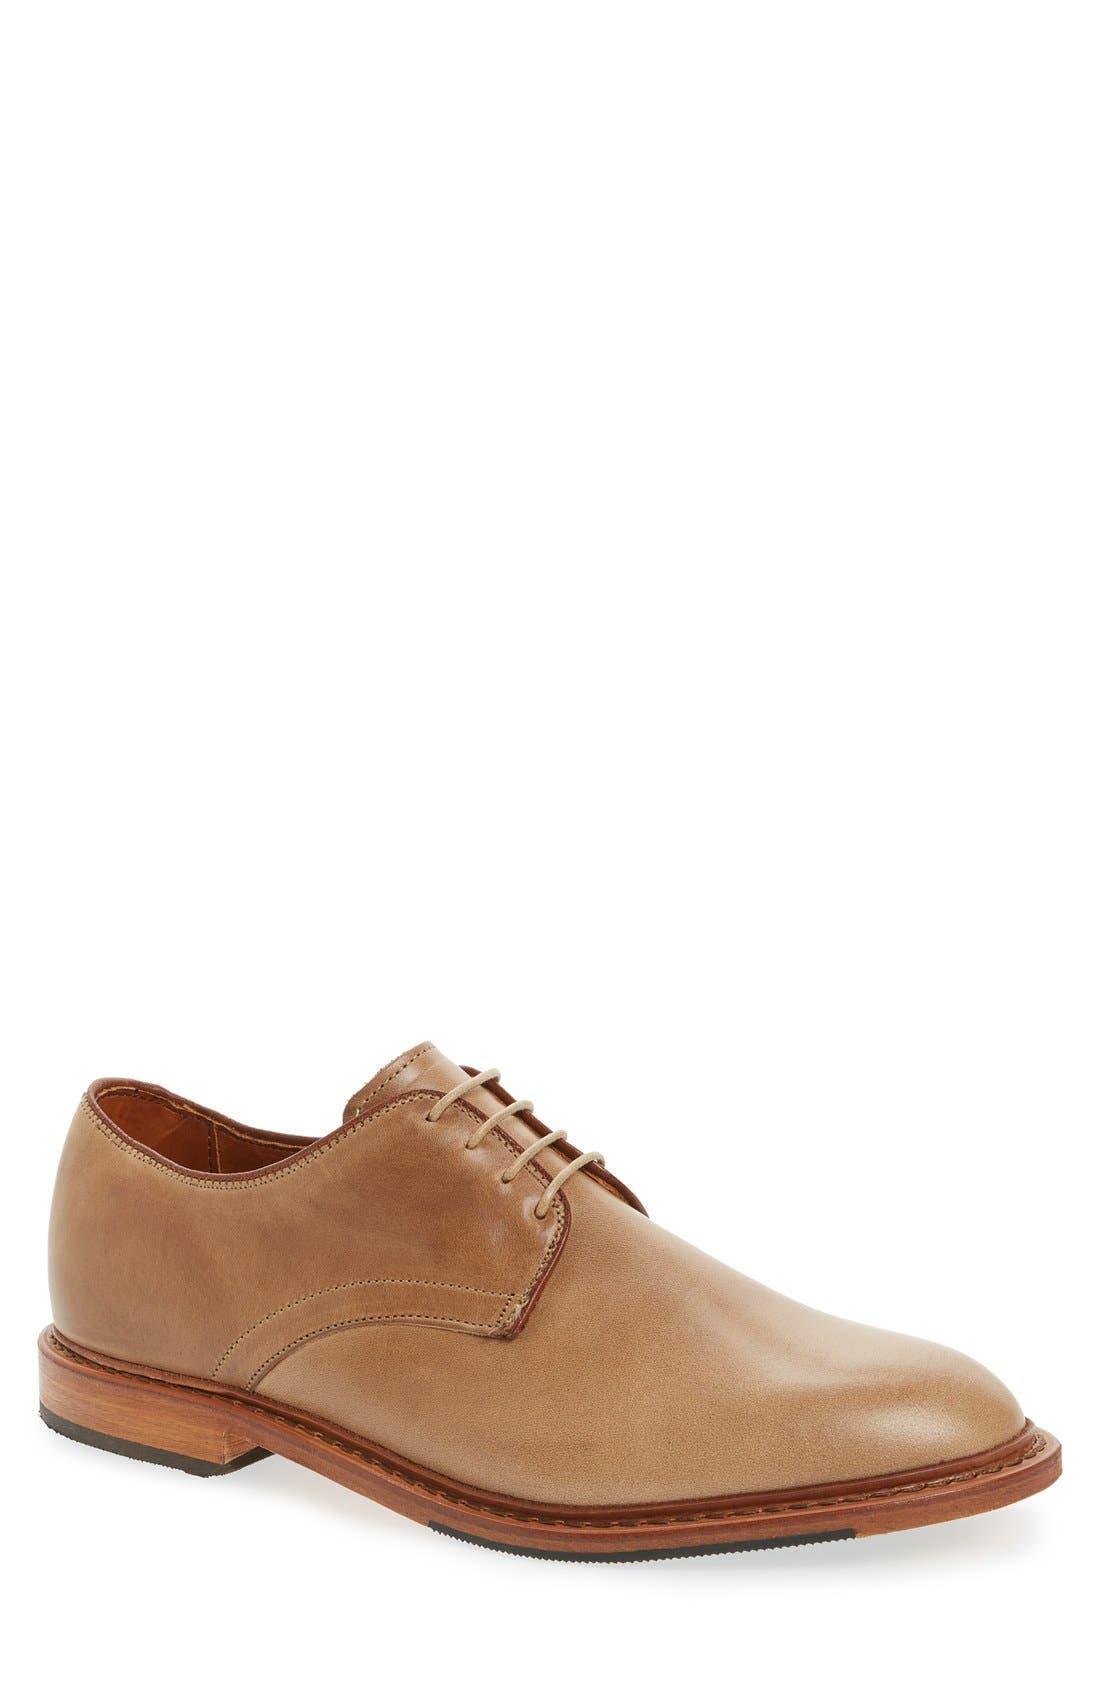 ALLEN EDMONDS Academy Plain Toe Derby